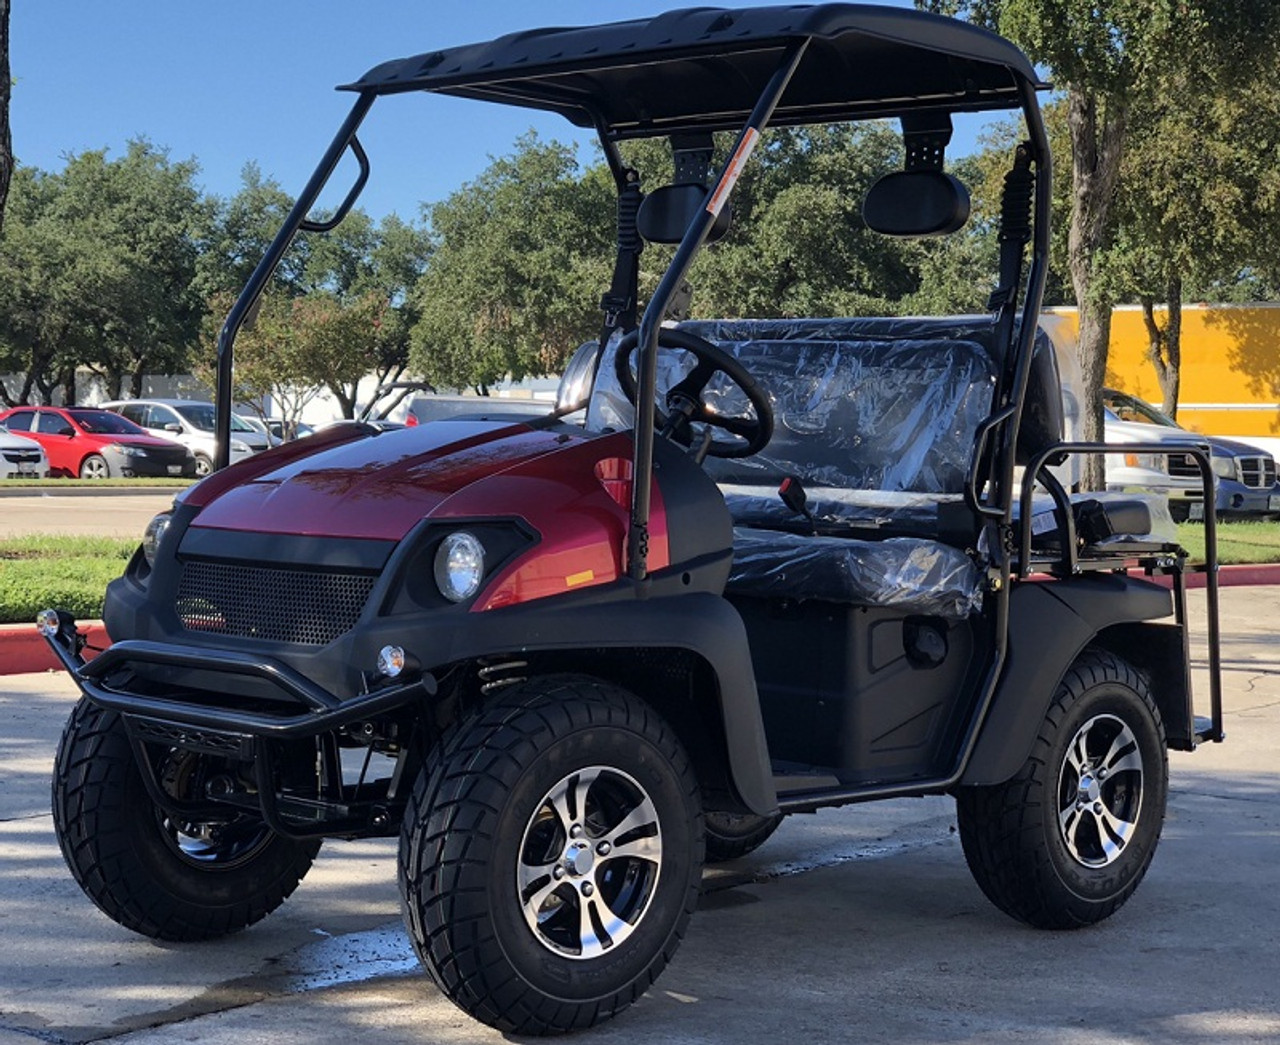 Red- Fully Loaded Cazador OUTFITTER 200 Golf Cart 4 Seater Street Legal UTV - Fully Assembled and Tested